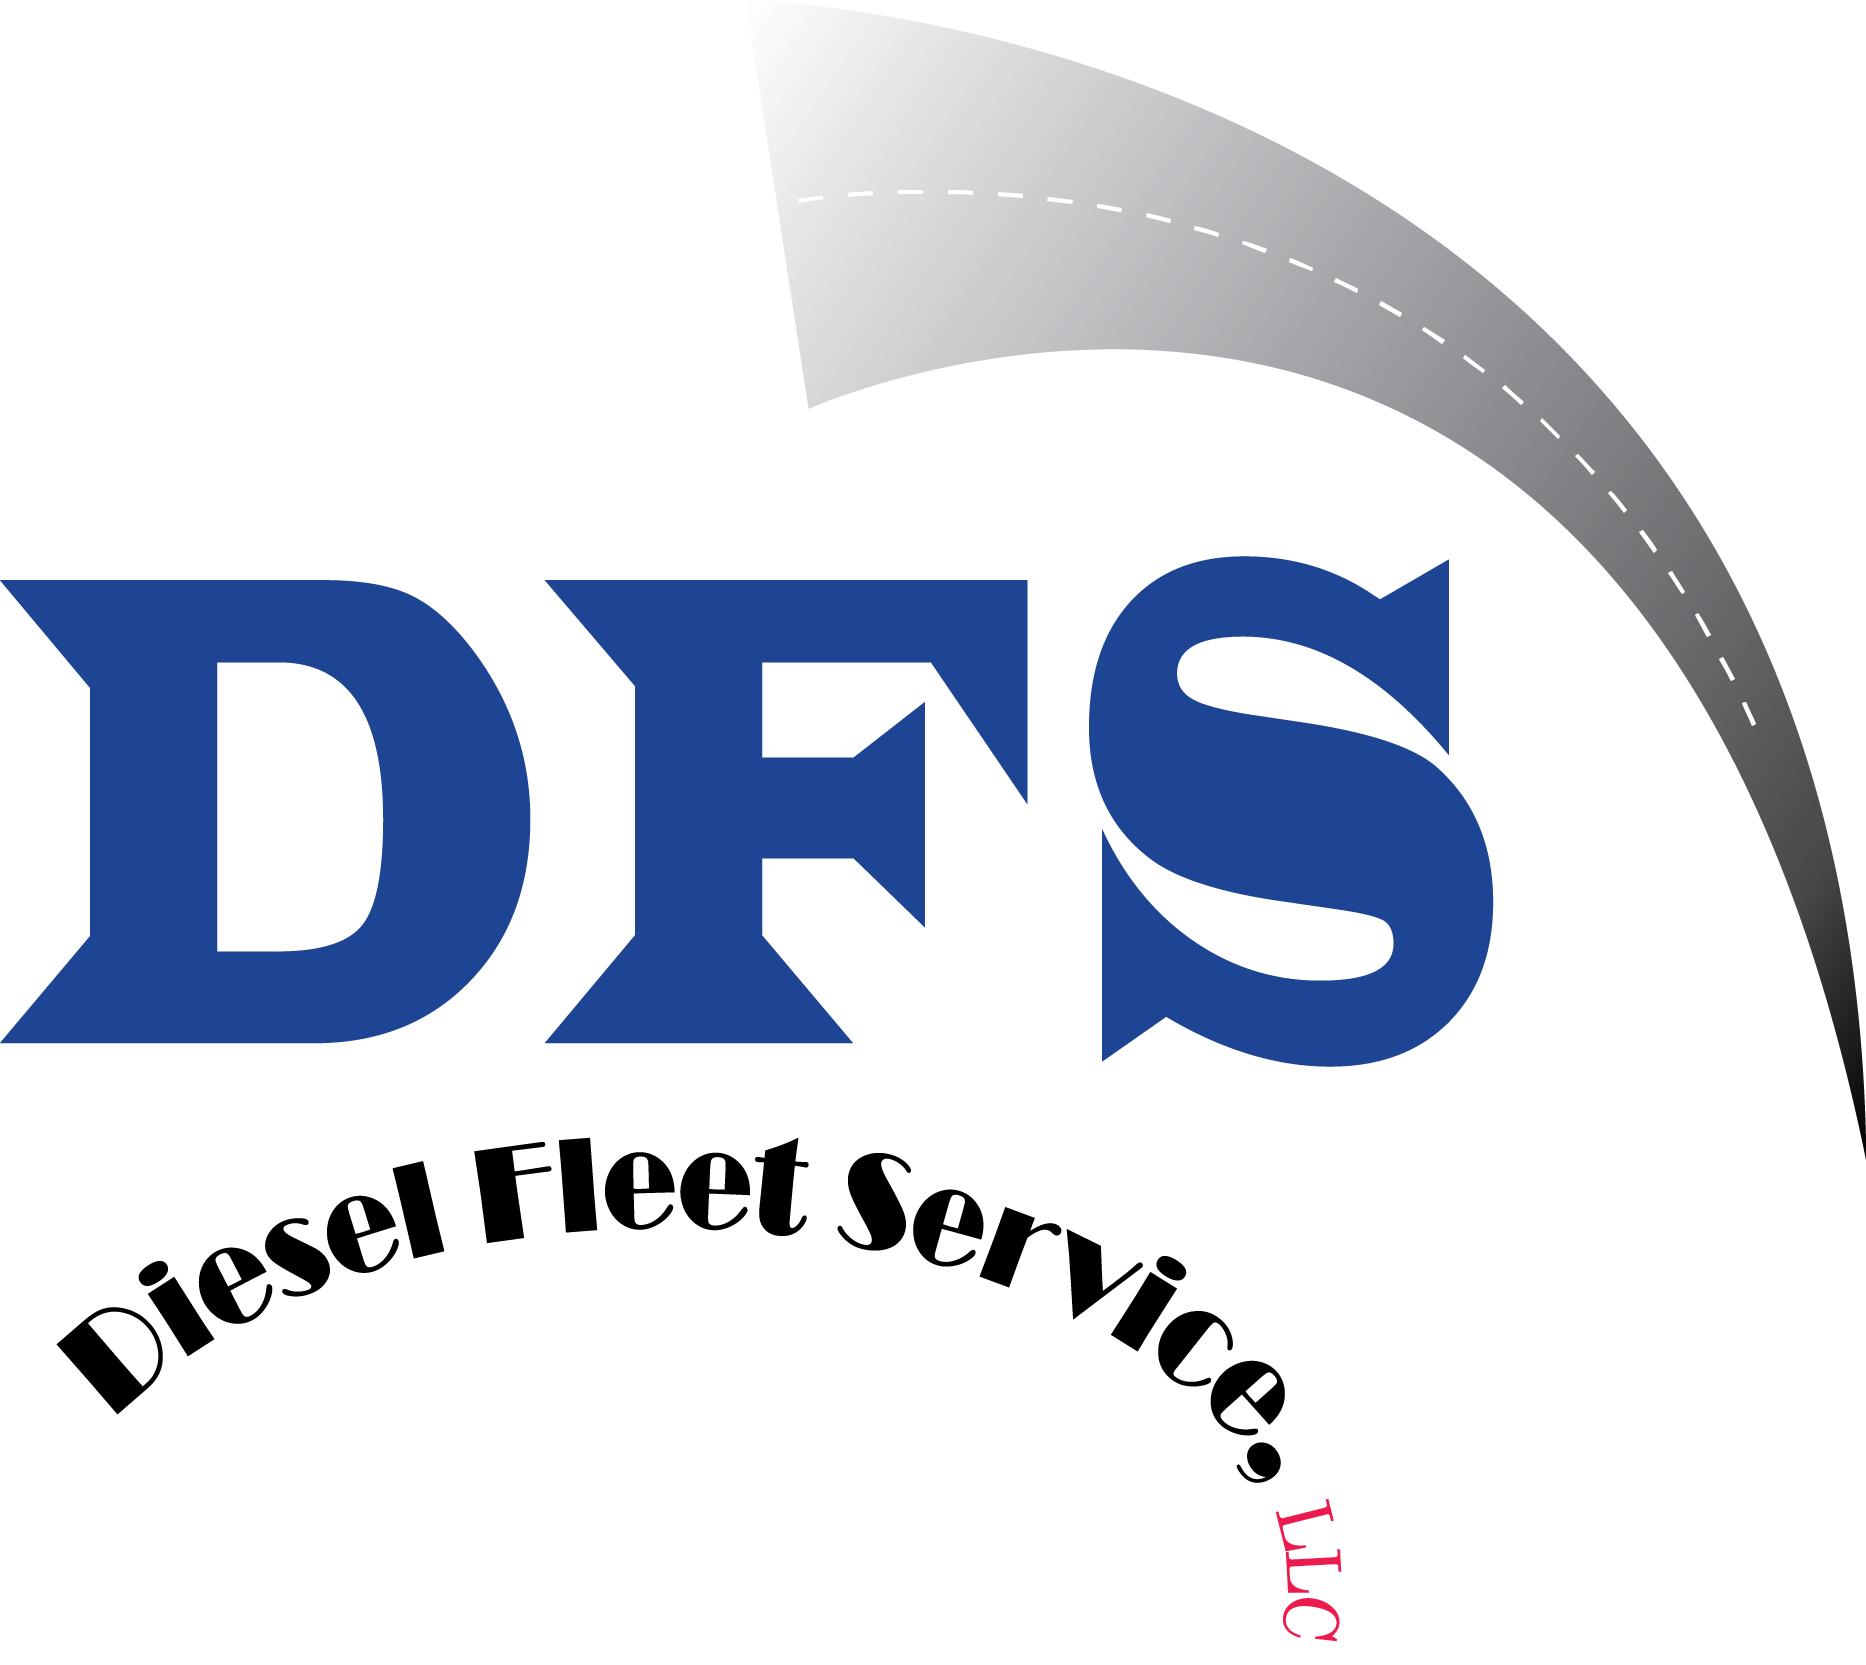 Logo Design by Smartweb - Entry No. 87 in the Logo Design Contest Artistic Logo Design for Diesel Fleet Service, LLC.